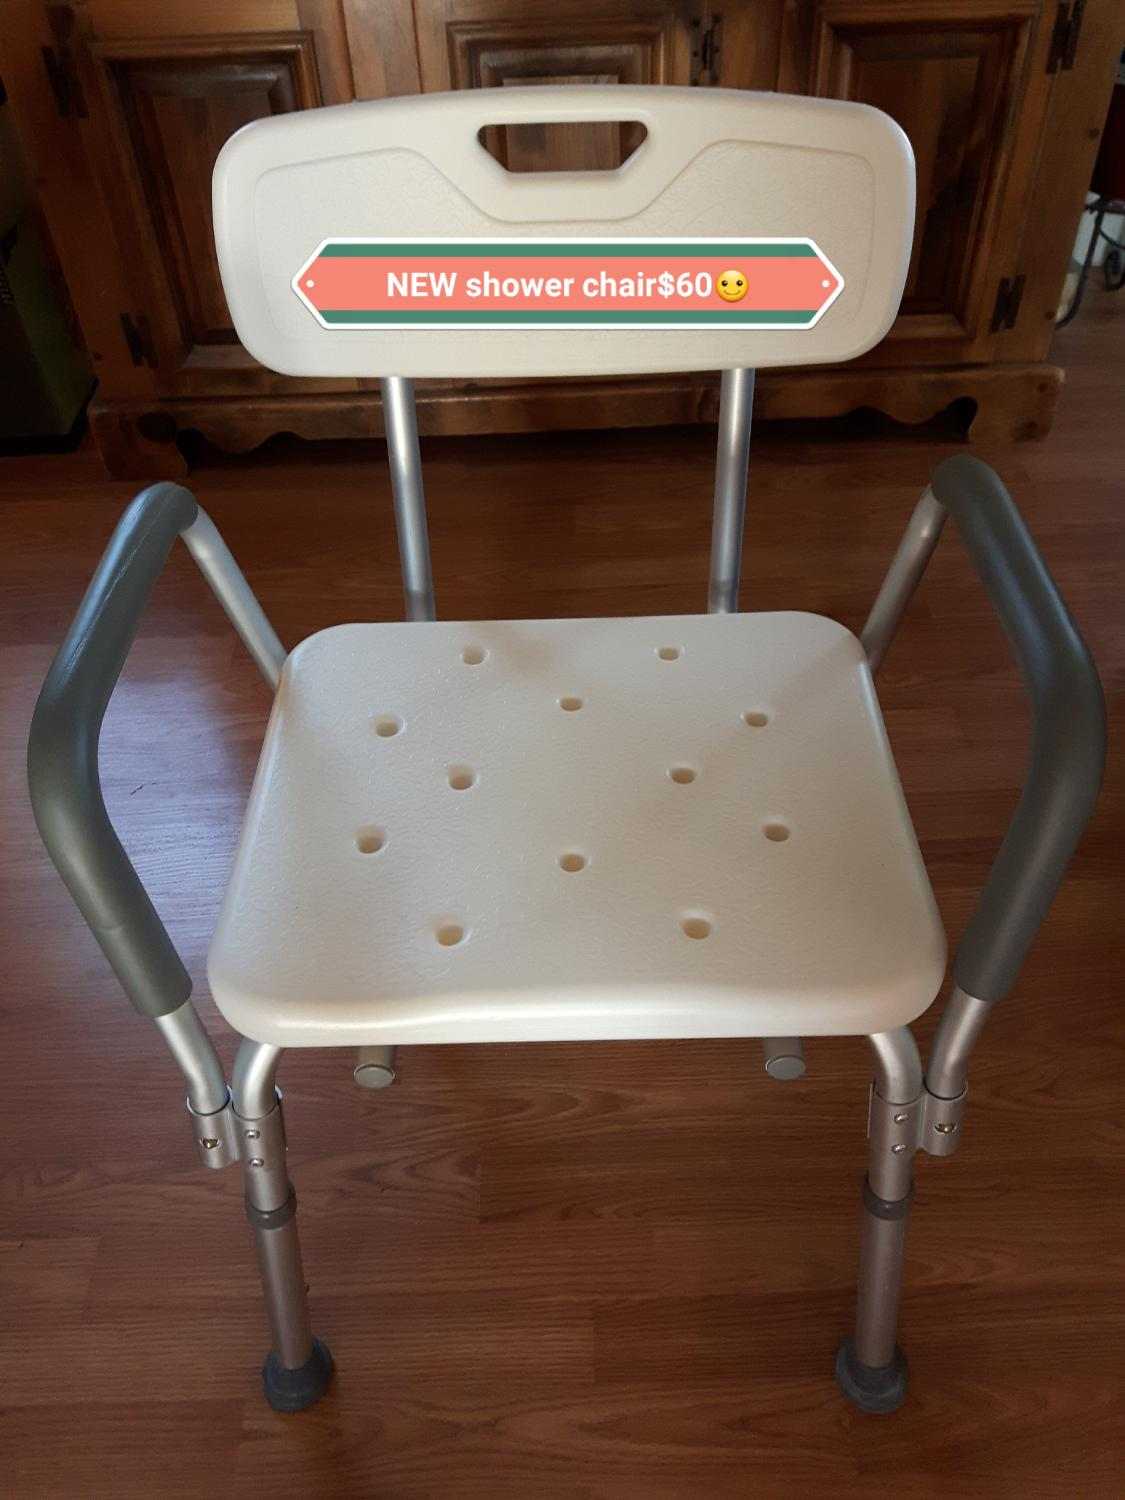 Best New Adjustable Shower Chair for sale in Shawville, Quebec for 2018